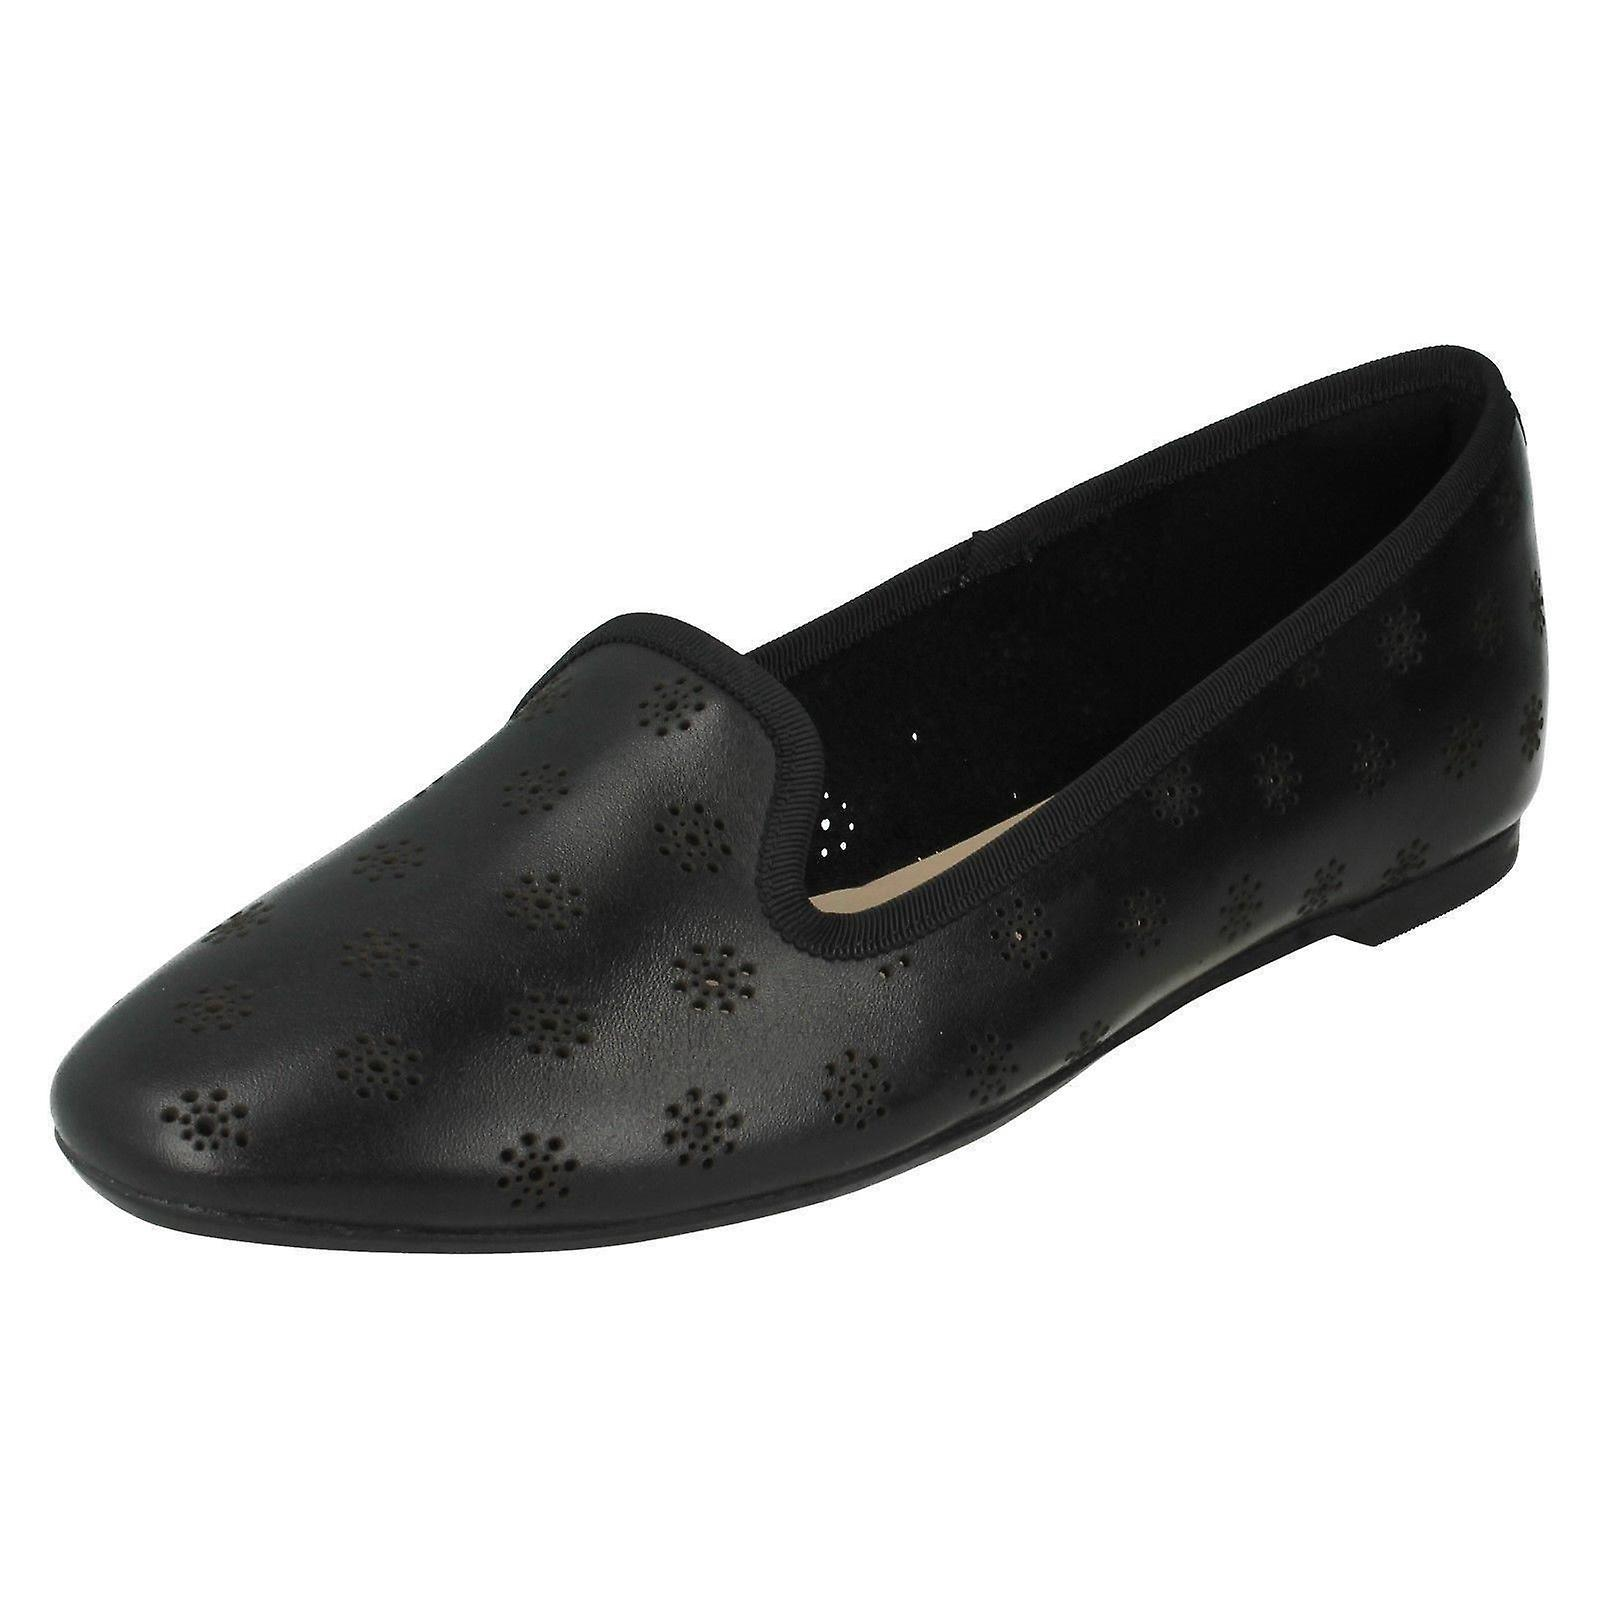 Ladies Clarks Cutout Casual Slip On Shoes Chia Moon mkKI4